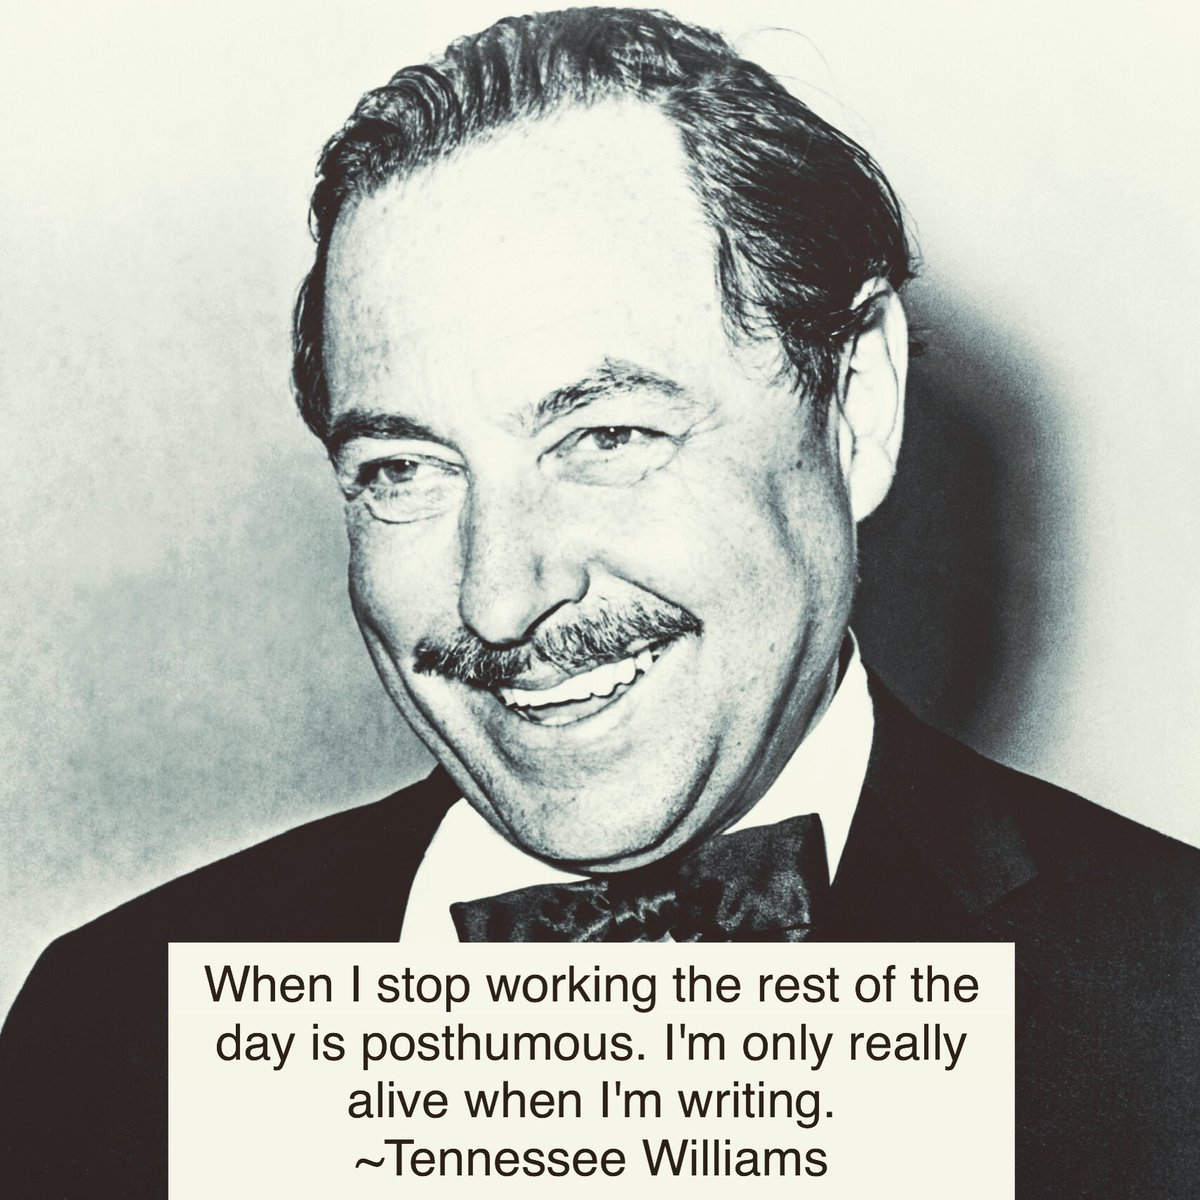 When I stop #working the rest of the #day is posthumous. I'm only really #alive when I'm #writing #Remembering #tennesseewilliams #today on his #feb25 #deathanniversary. #celebrityquotes #writer #work #worklife #living #writerslife #playwright #playwrights #inmemoriam #celebritypic.twitter.com/kzo9bIQTqF